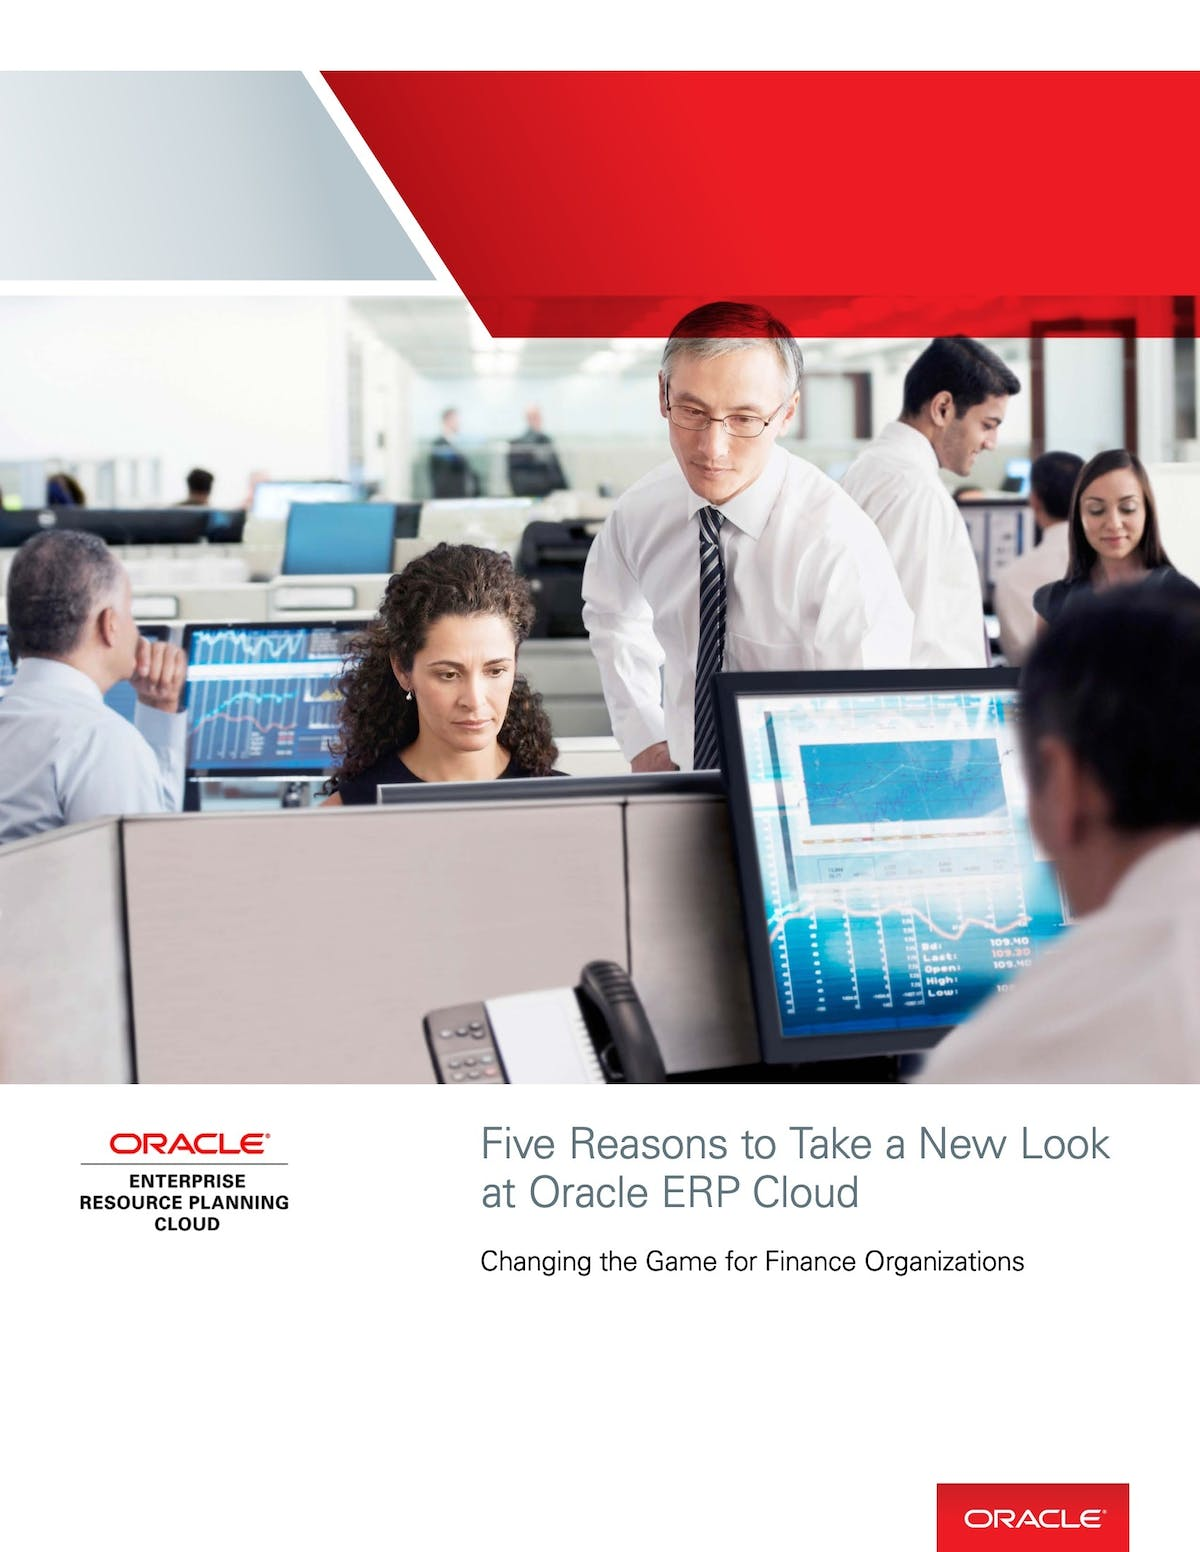 Oracle ERP Cloud Applications White Paper - Five Reasons to Take a New Look at Oracle ERP Cloud